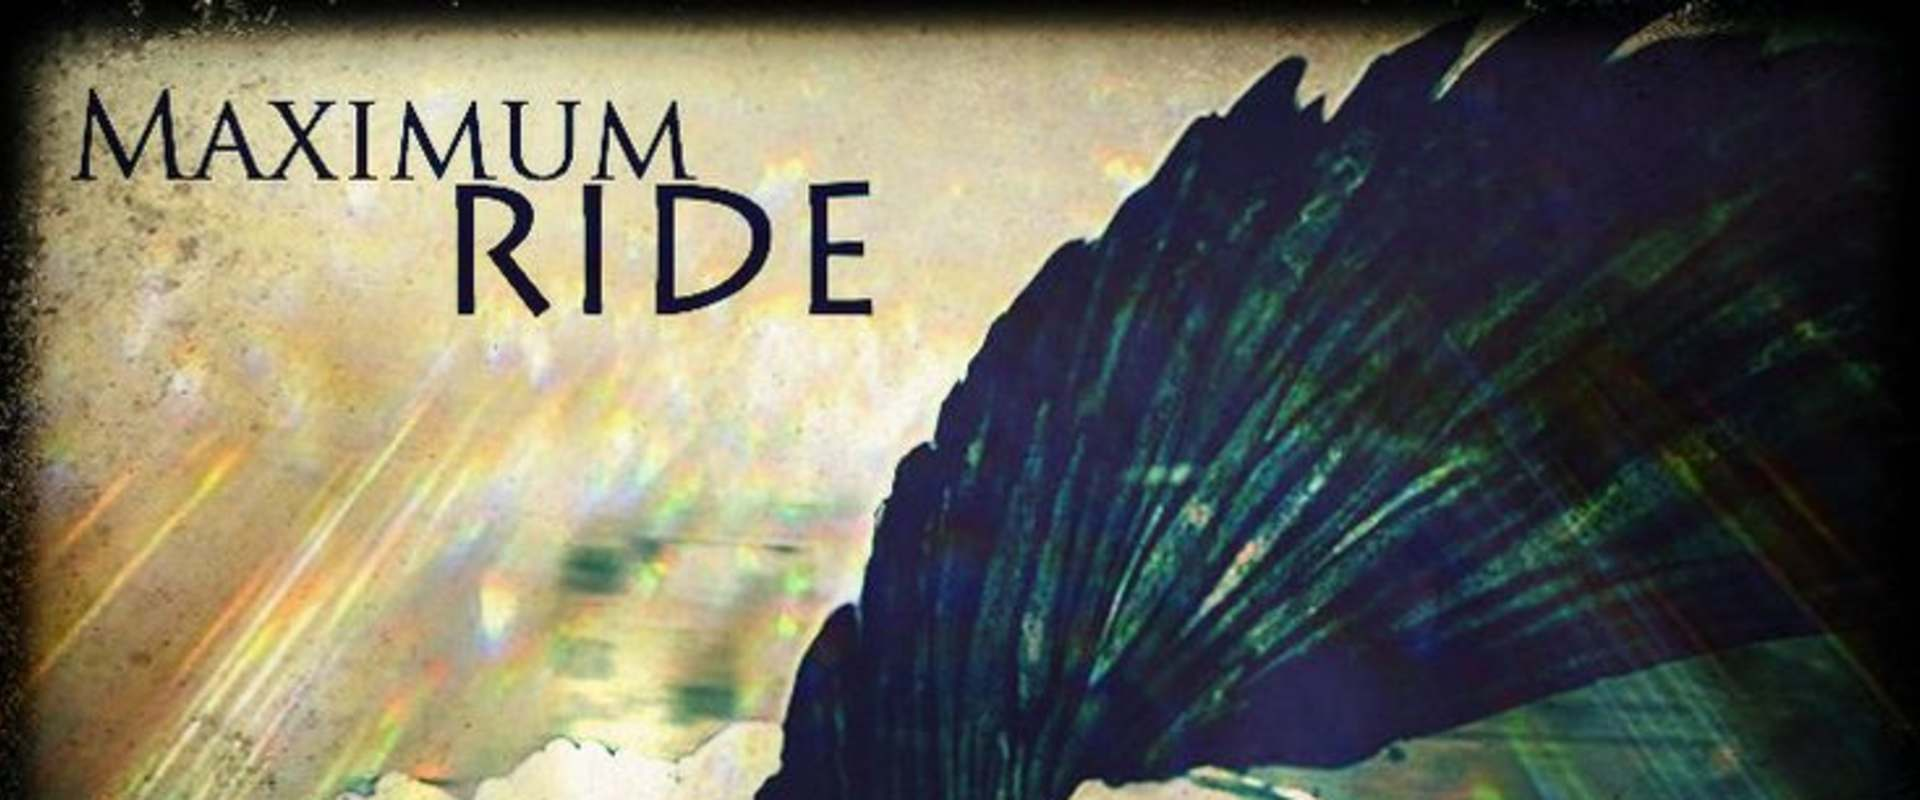 Maximum Ride background 1